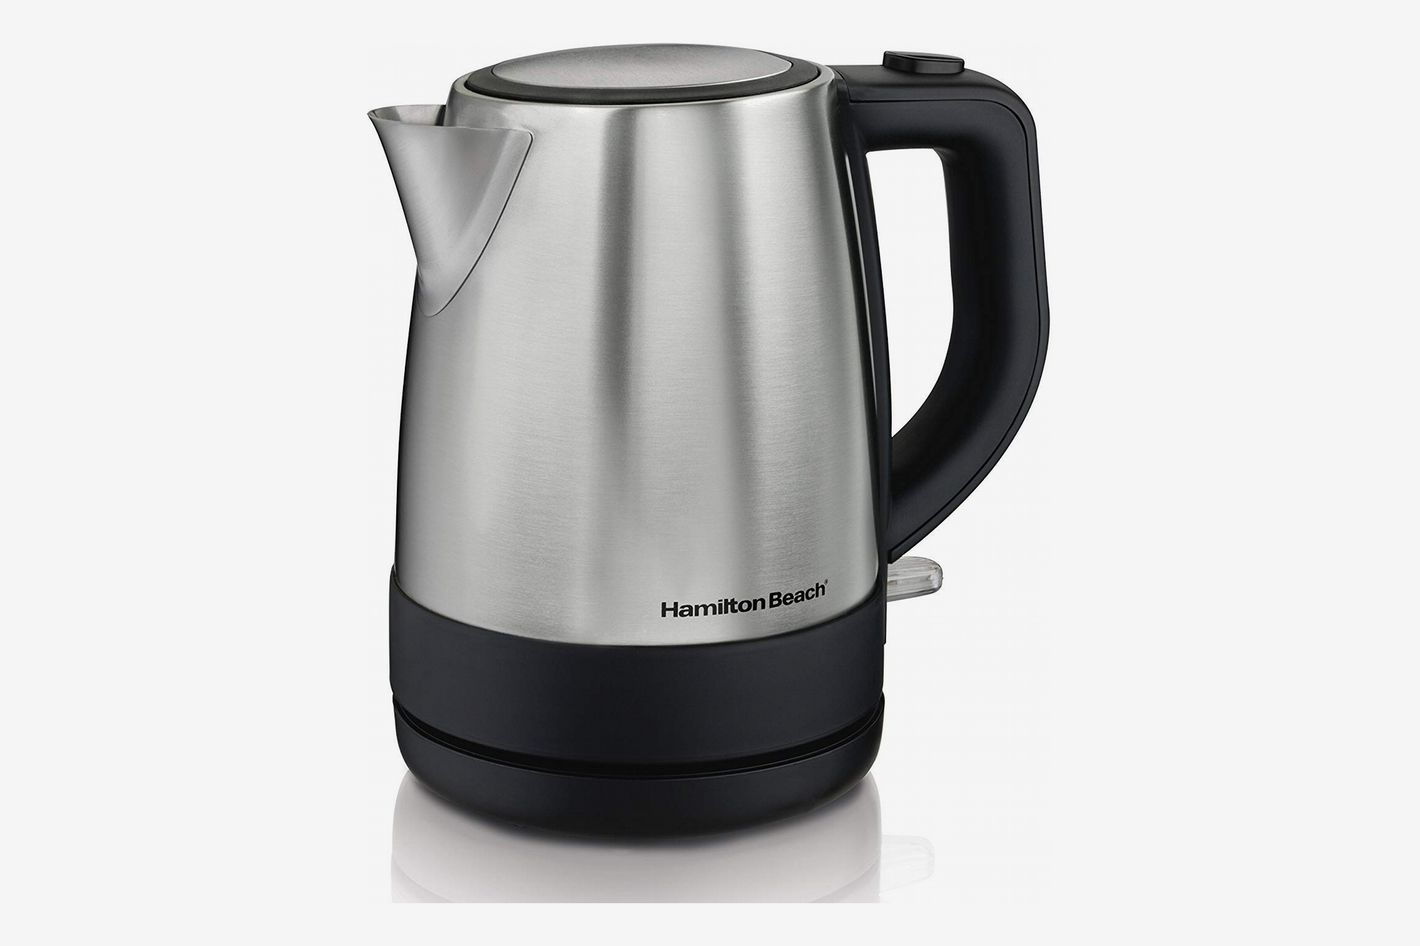 Hamilton Beach 40998 1L Electric Kettle, Silver